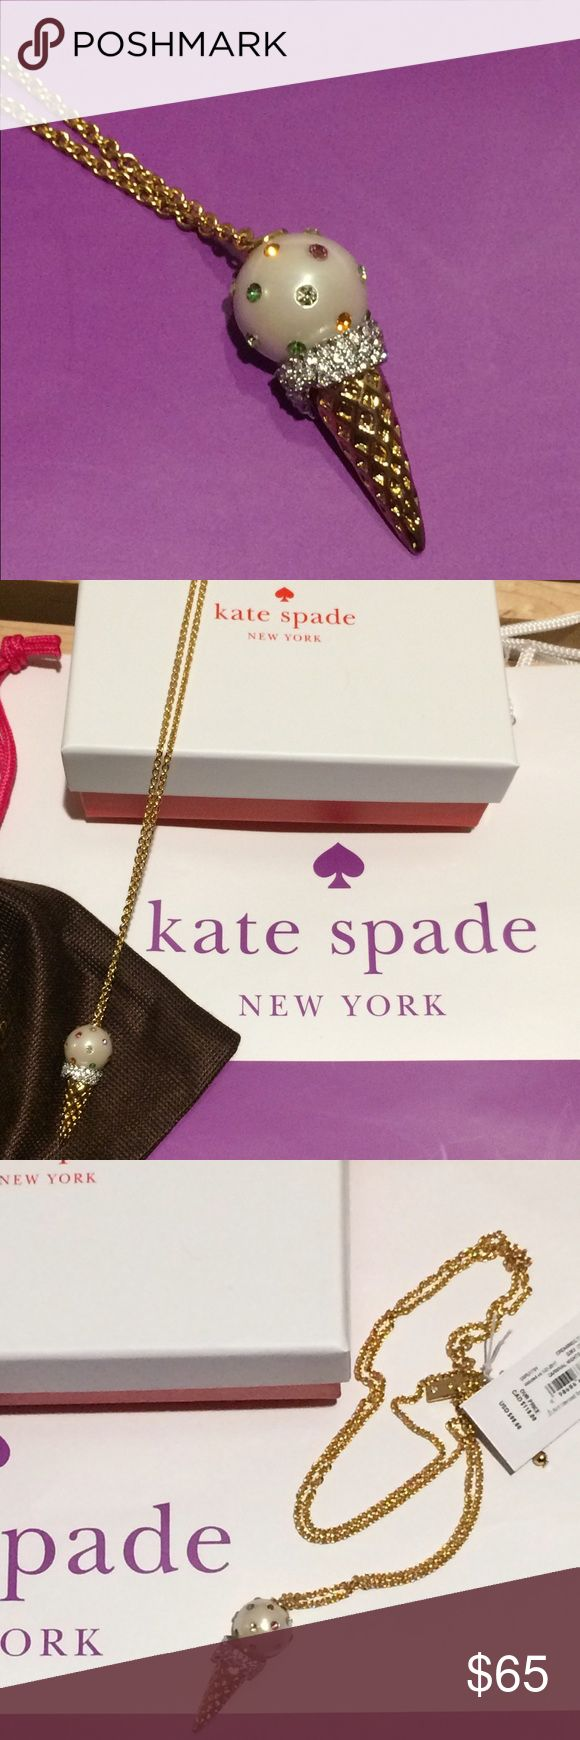 "Kate Spade Carnival Nights Pendant Necklace Kate Spade Carnival Nights Ice Cream Pendant Necklace. 12K gold plated, lobster clasp closure, 30"". Retails for $98. Dust bag and gift box included. kate spade Jewelry Necklaces"